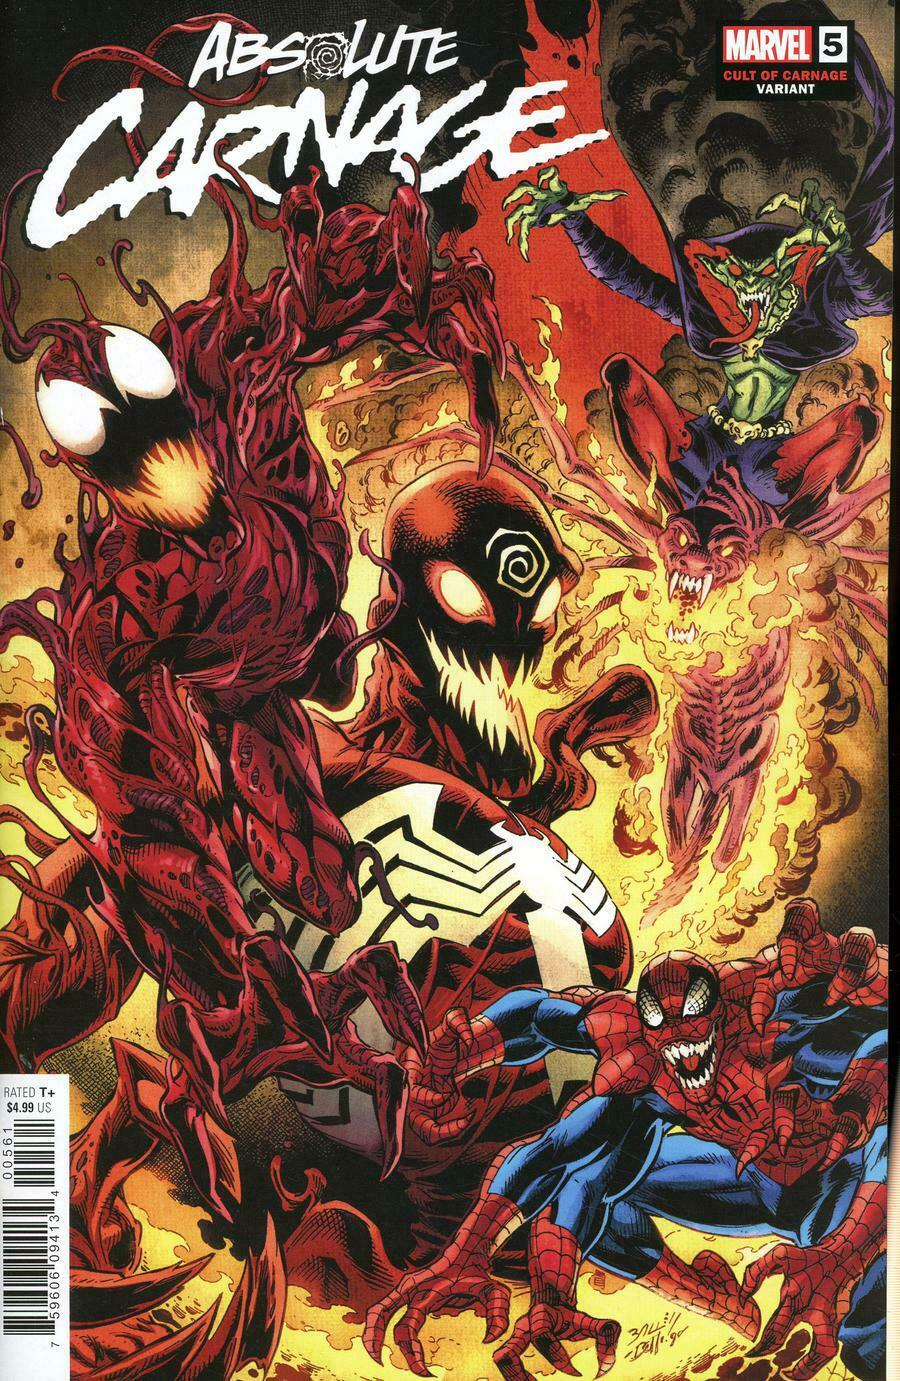 ABSOLUTE CARNAGE #5 1:25 BAGLEY CULT OF CARNAGE VARIANT (2019) VF/NM MARVEL